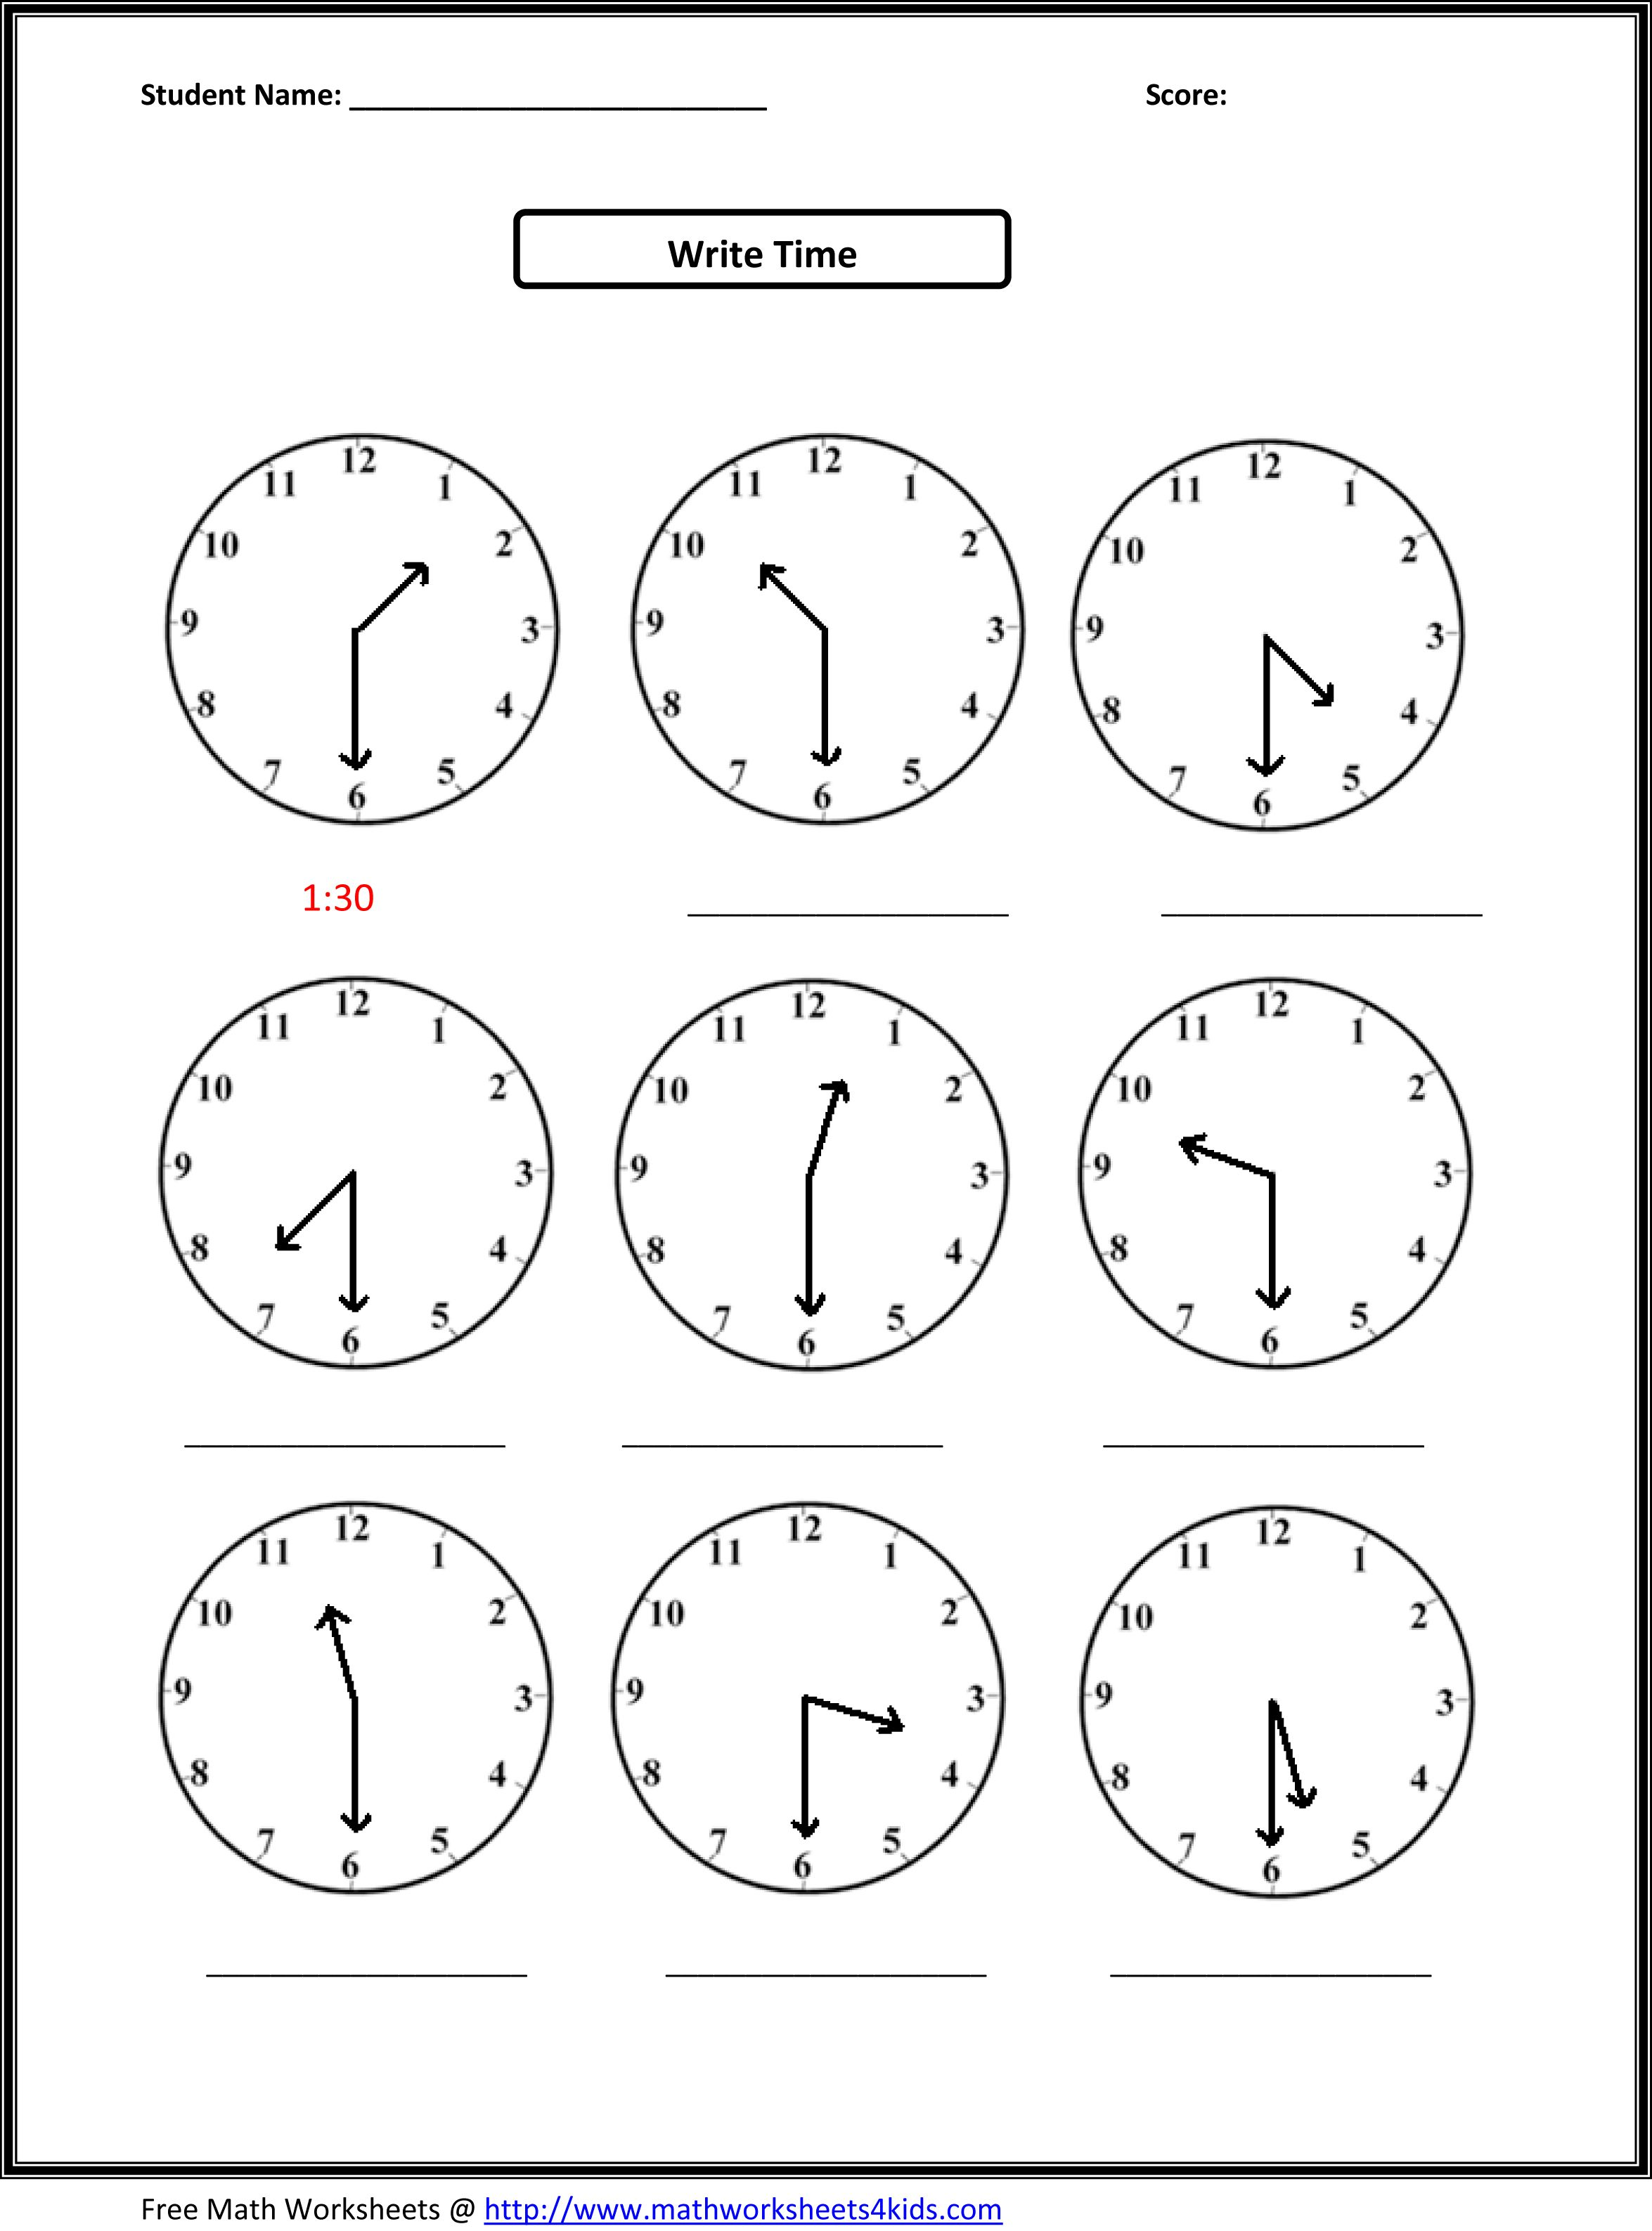 Weirdmailus  Unusual Worksheet On Time For Grade   Reocurent With Interesting Free Printable Telling Time Worksheets Nd Grade  Reocurent With Amusing Easter Puzzle Worksheets Also Free Grade  English Worksheets In Addition Sequences Worksheet Ks And First Grade Worksheets Printables As Well As Mode Mean Median Range Worksheets Additionally D Shapes Worksheets Free From Reocurentcom With Weirdmailus  Interesting Worksheet On Time For Grade   Reocurent With Amusing Free Printable Telling Time Worksheets Nd Grade  Reocurent And Unusual Easter Puzzle Worksheets Also Free Grade  English Worksheets In Addition Sequences Worksheet Ks From Reocurentcom